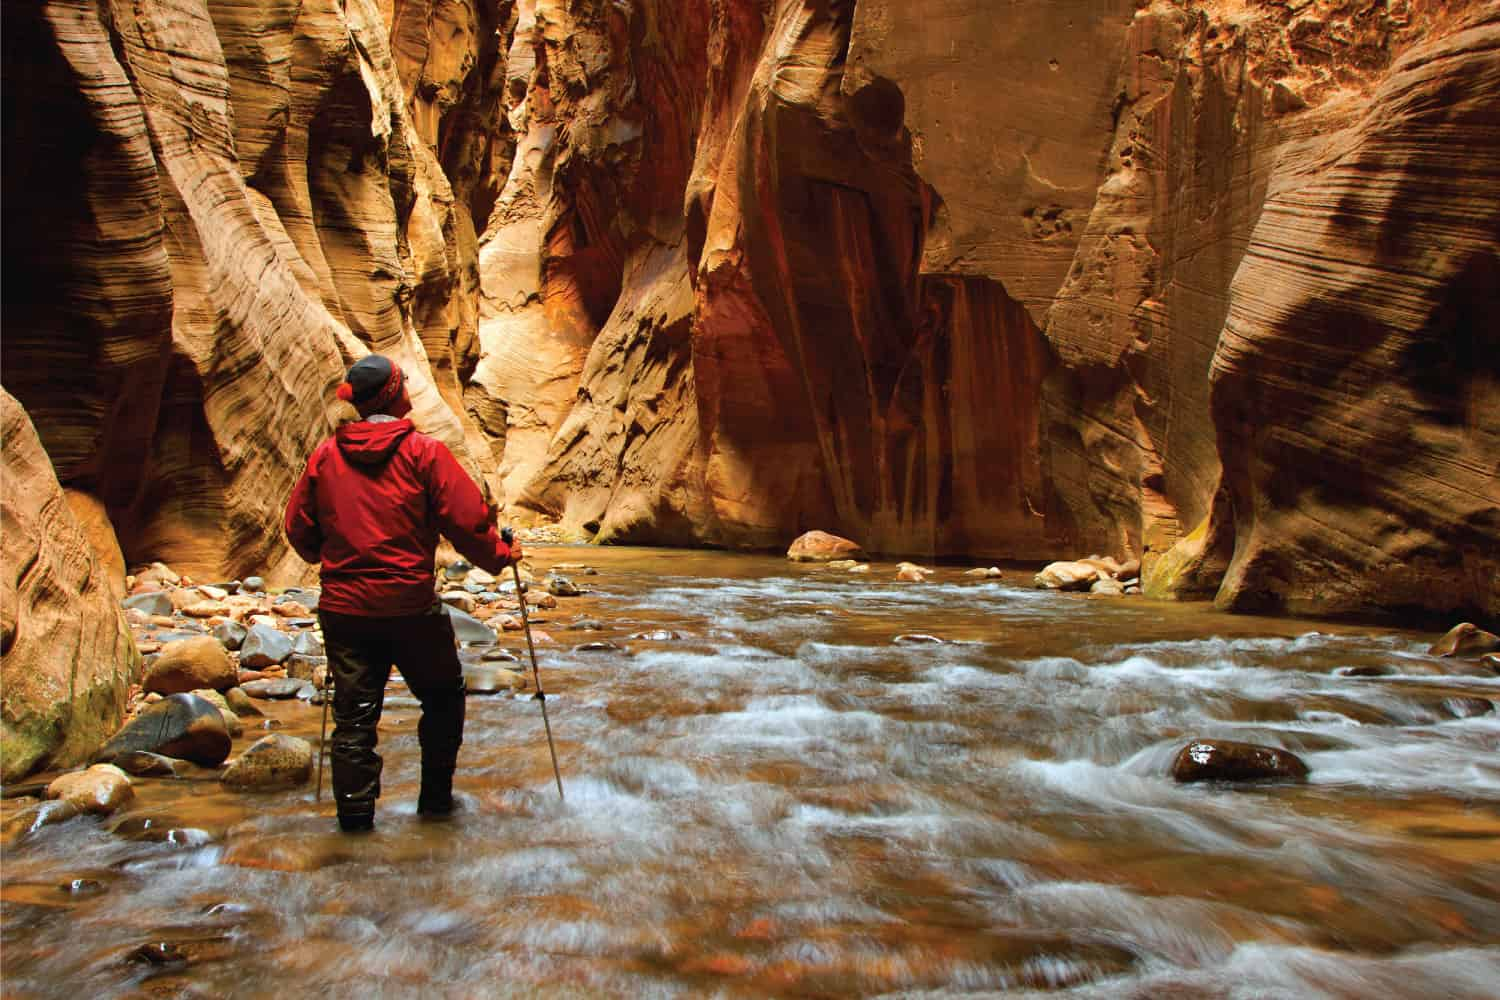 A man hiking into the narrows in Zion National Park, Utah USA